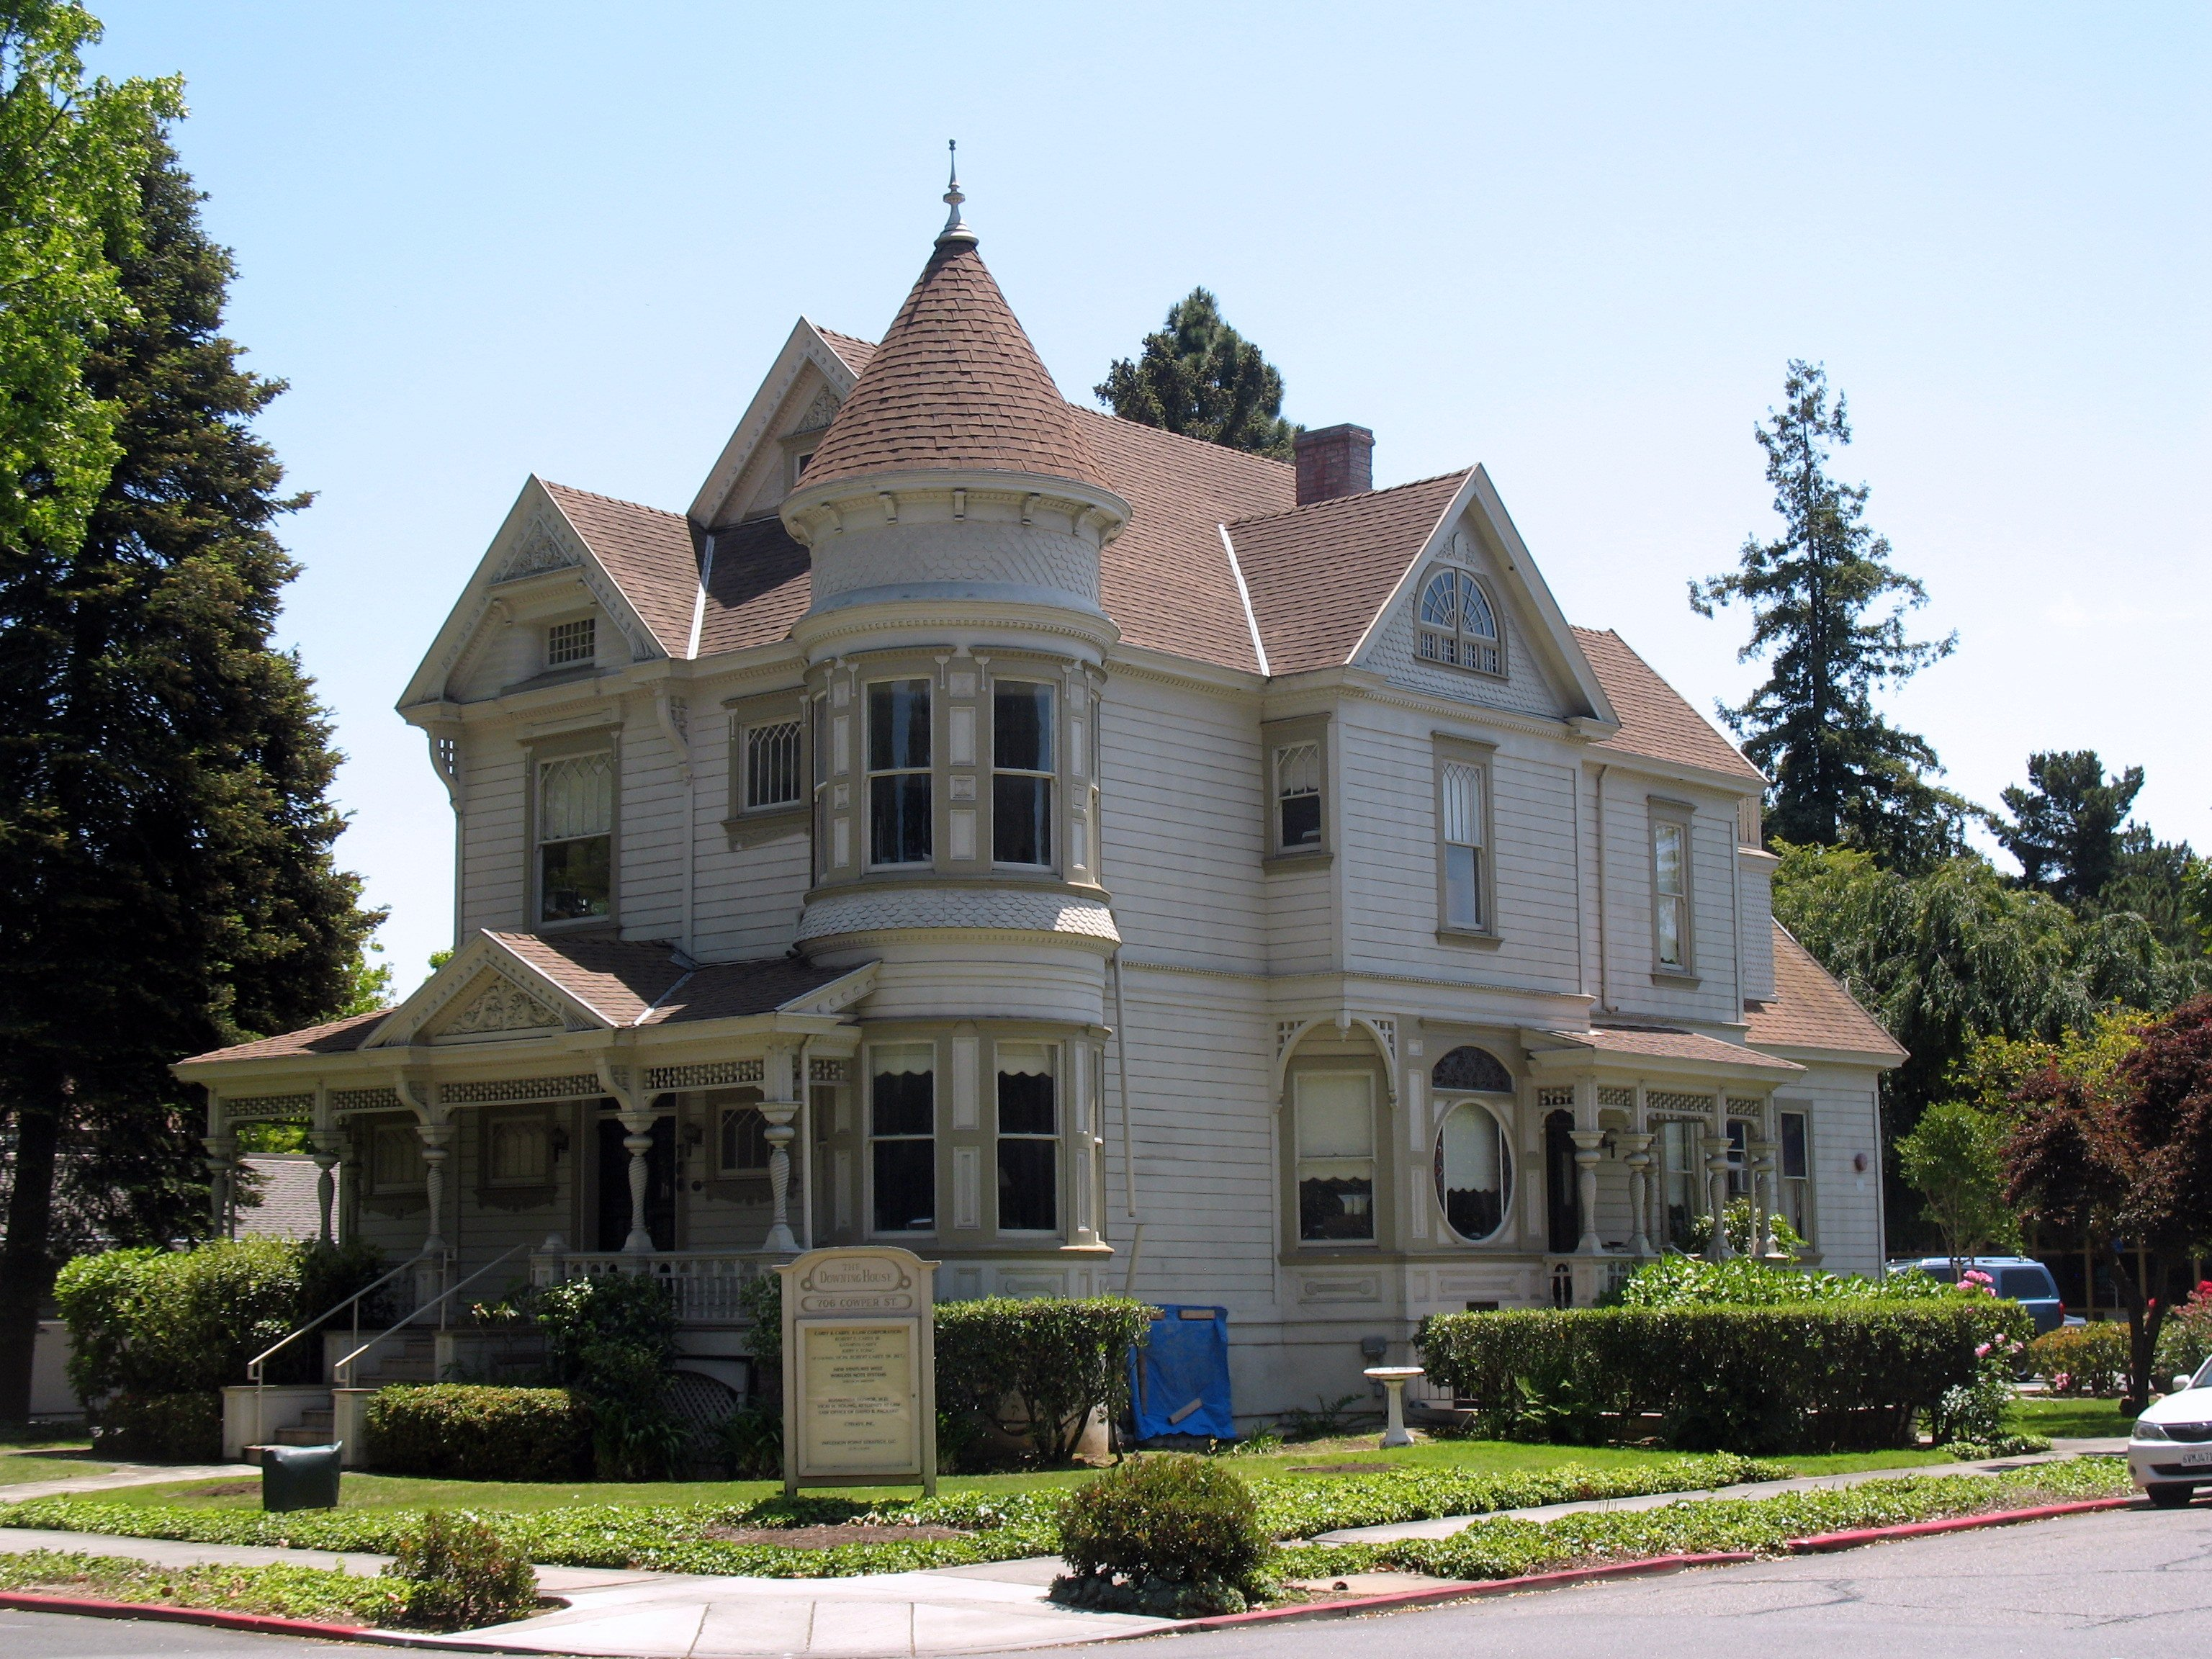 May 27, 2012: T. B. Downing House, 706 Cowper St., Palo Alto